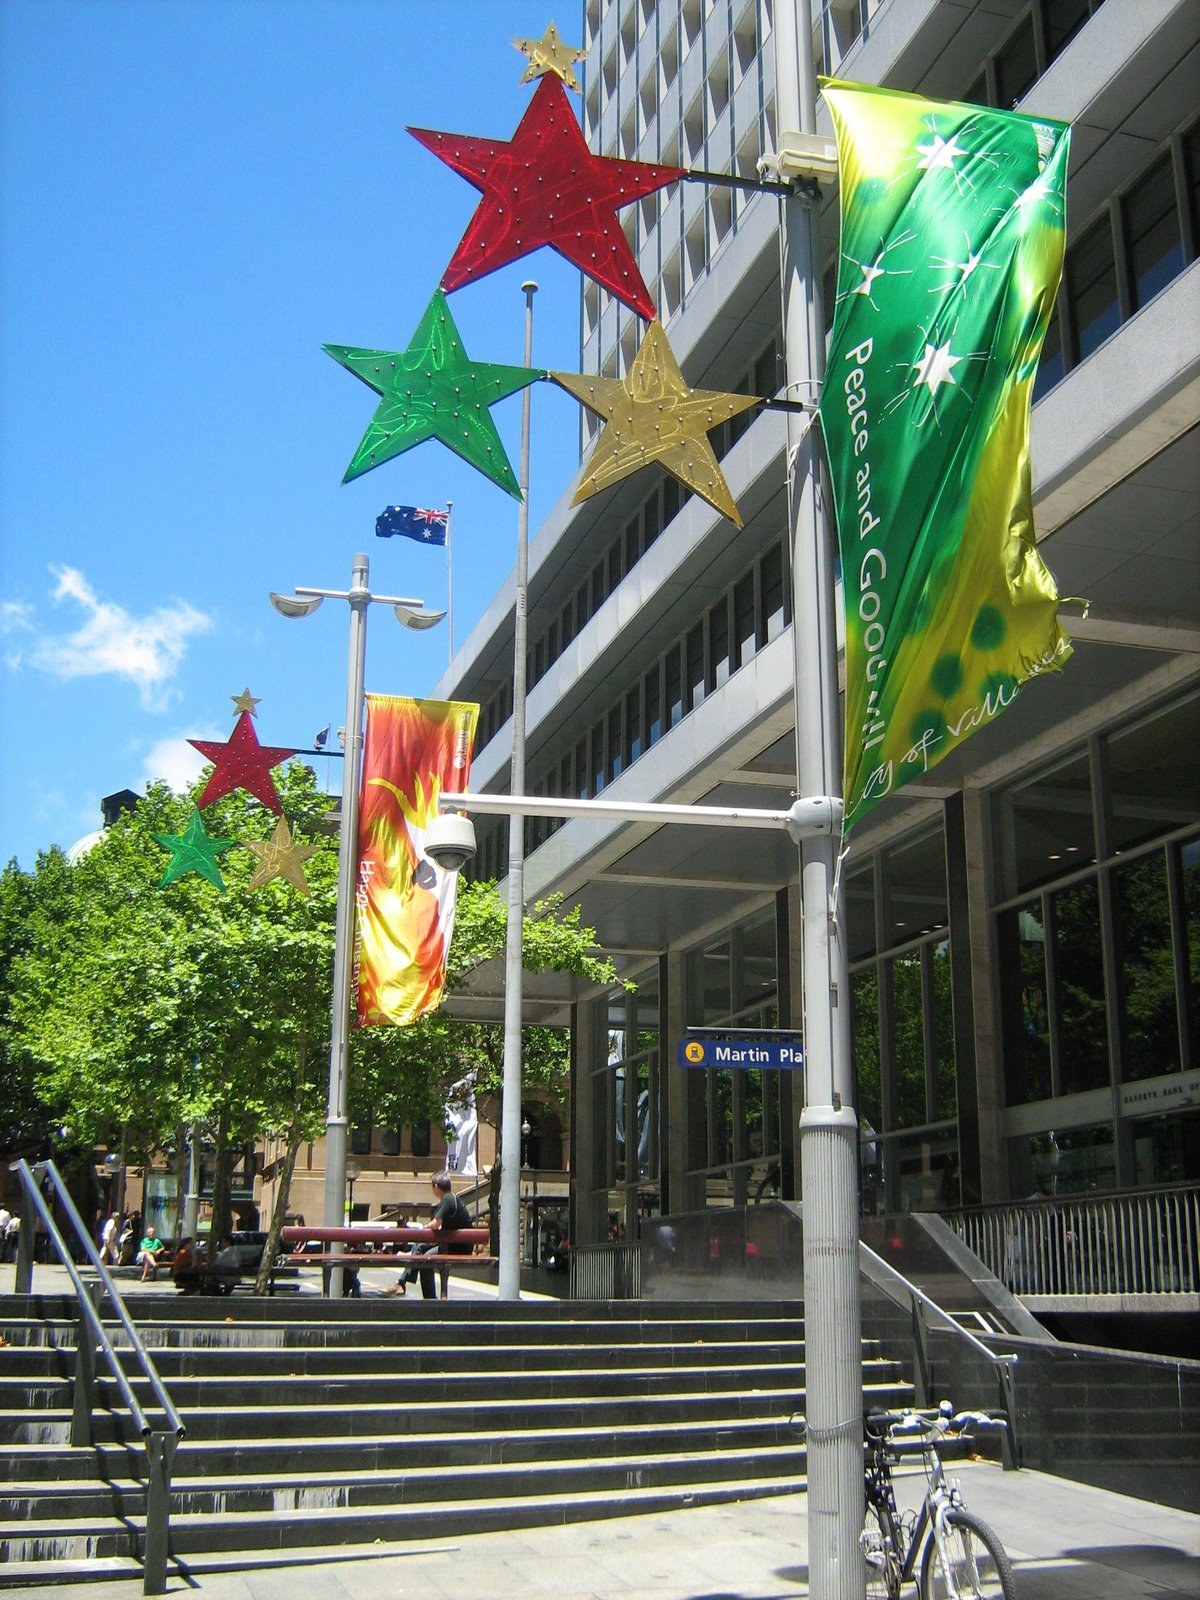 christmas banners and stars in red green and yellow adorn light poles throughout the city these banners and decorations are located outside the reserve